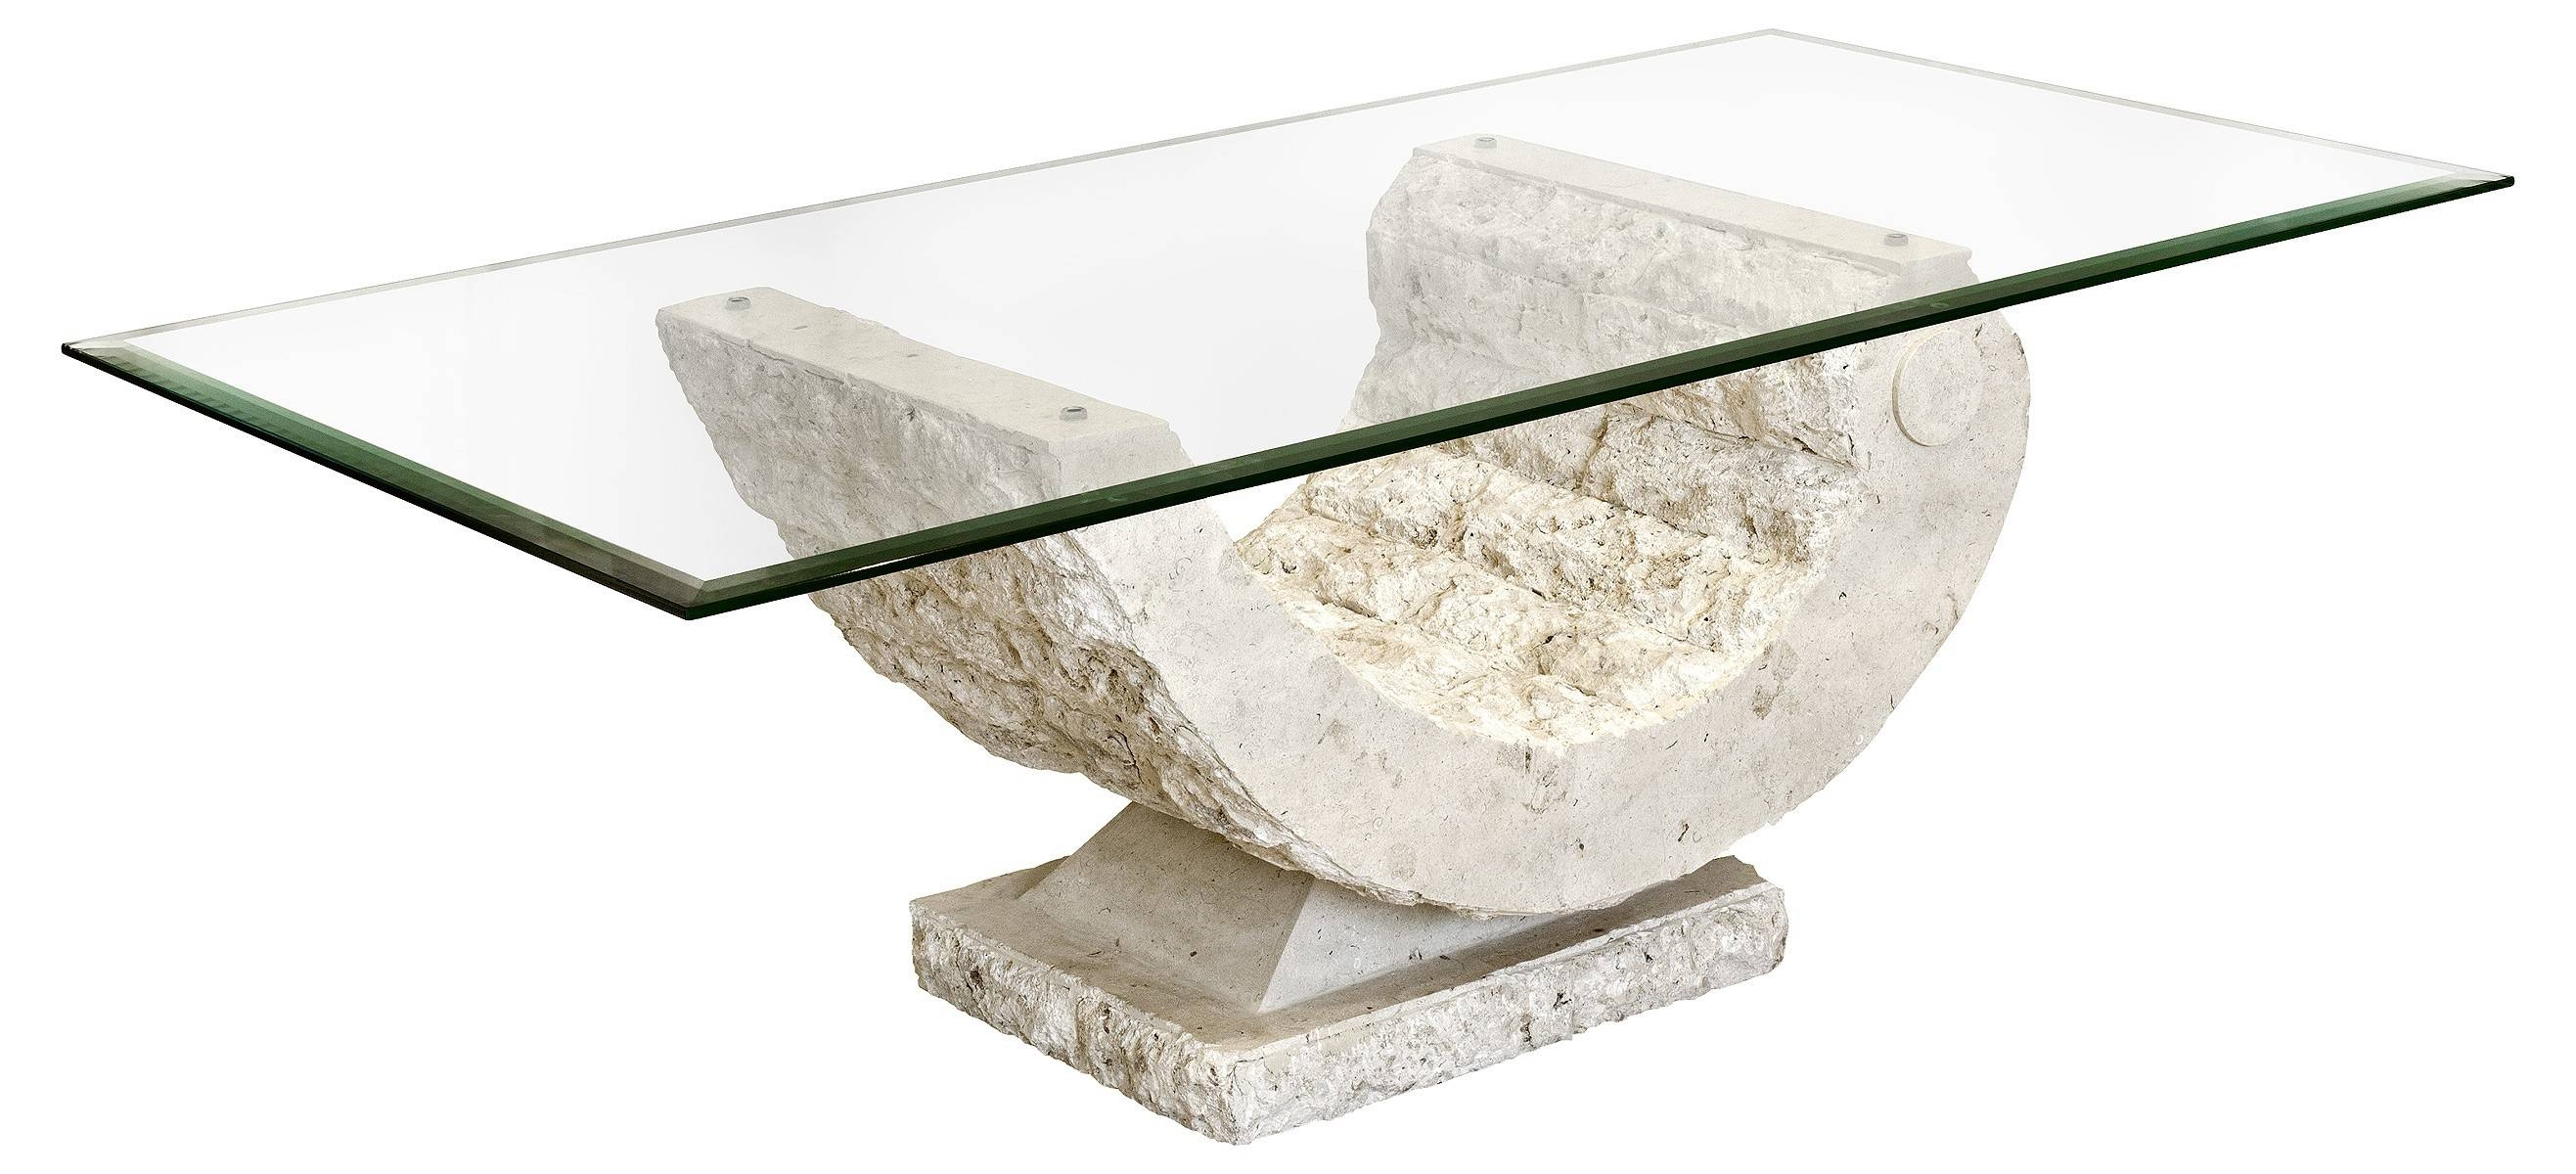 Mactan Stone Marina Coffee Table - Be Fabulous! pertaining to Glass And Stone Coffee Table (Image 8 of 15)